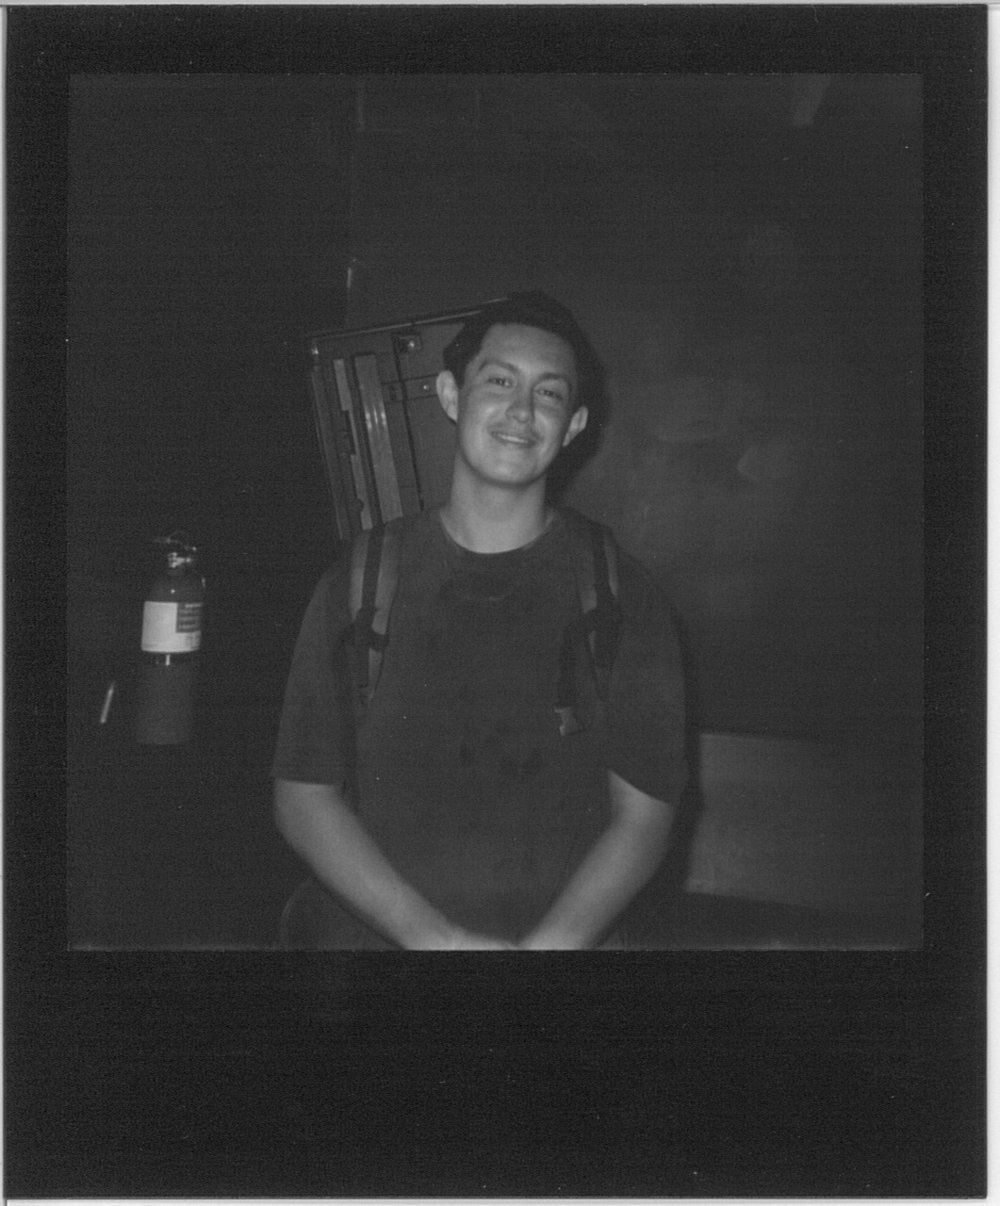 Hobo Johnson, polaroid by Adam Murphy @ nonecktie.tumblr.com